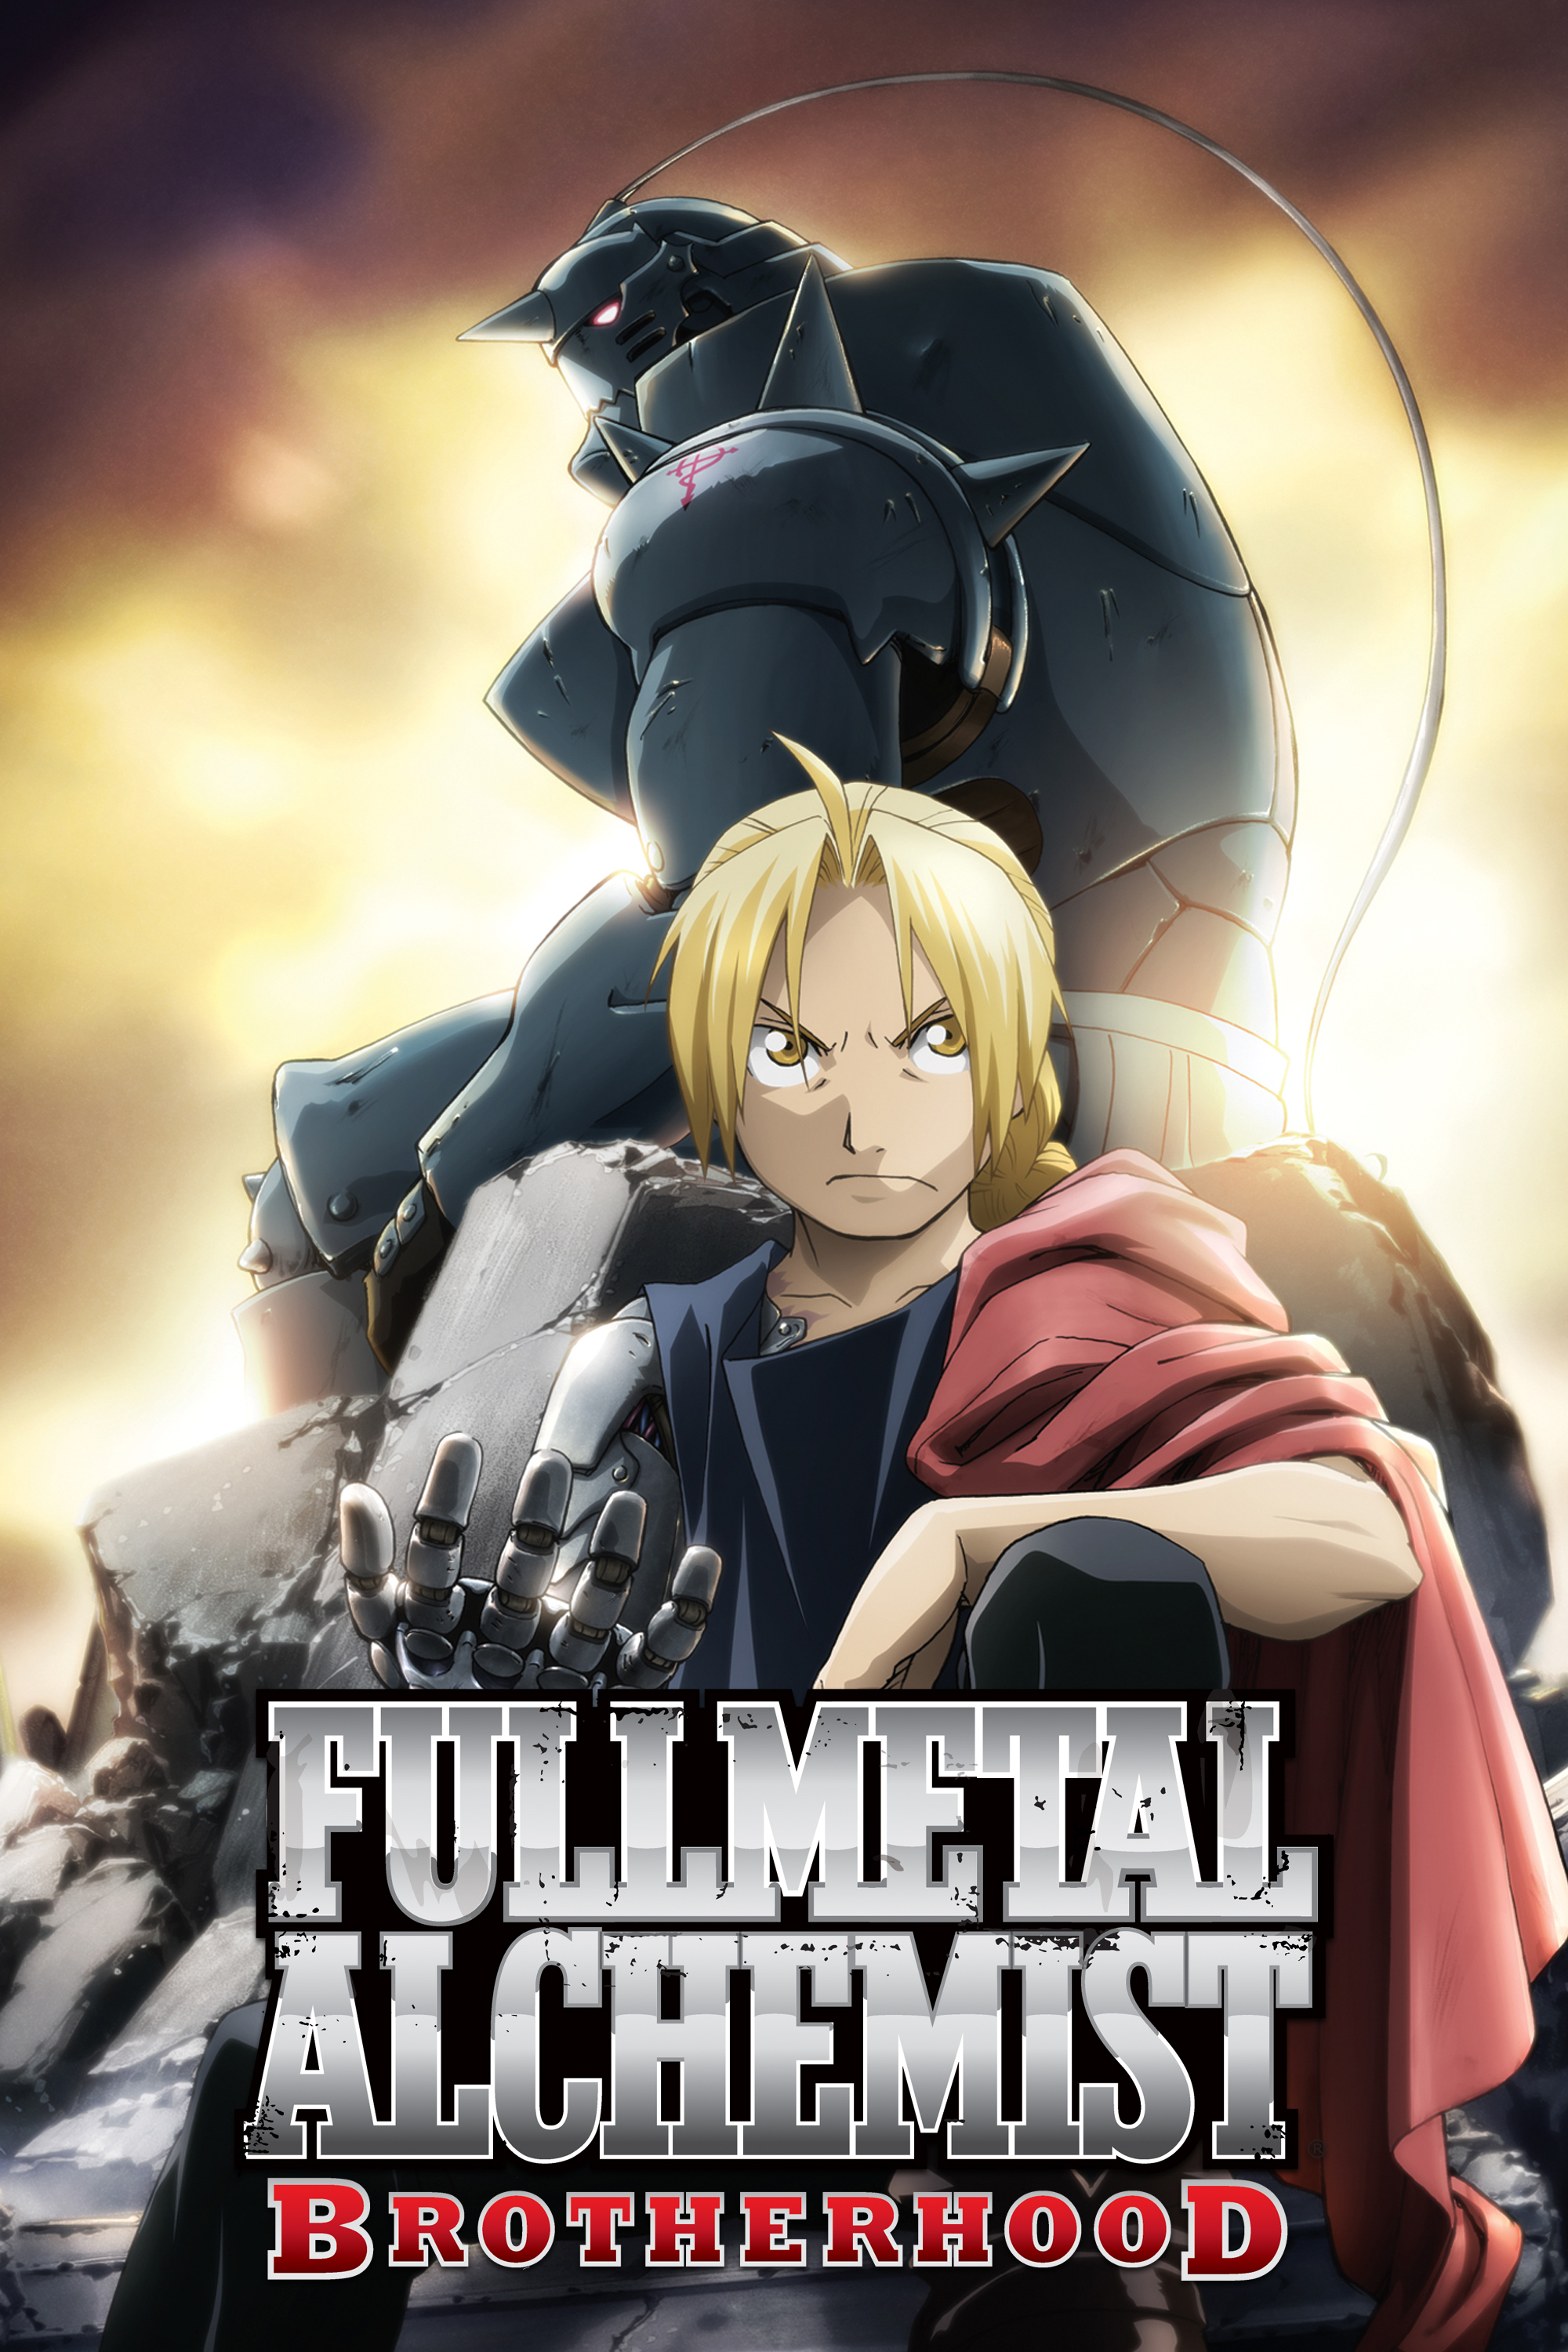 N//C Fullmetal Alchemist/ï/¼/šBrotherhood Anime Round Three-in-One Charging Cable TPE Cable Pc Surface Aluminum Alloy Shell